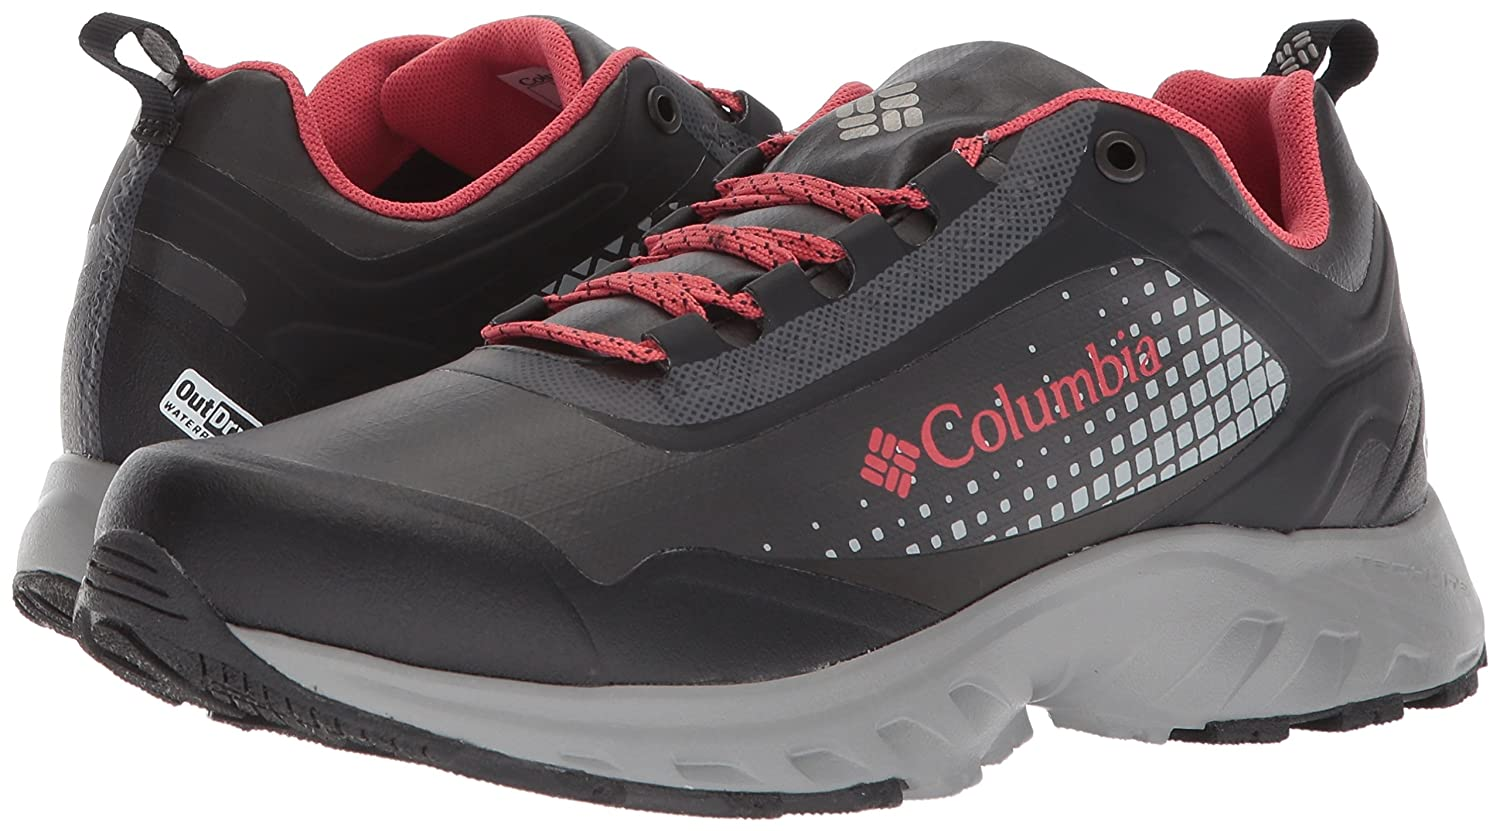 Columbia Women's Irrigon Shoe Trail Outdry Xtrm Hiking Shoe Irrigon B073RN2FXD 9.5 B(M) US|Black, Sunset Red af2004